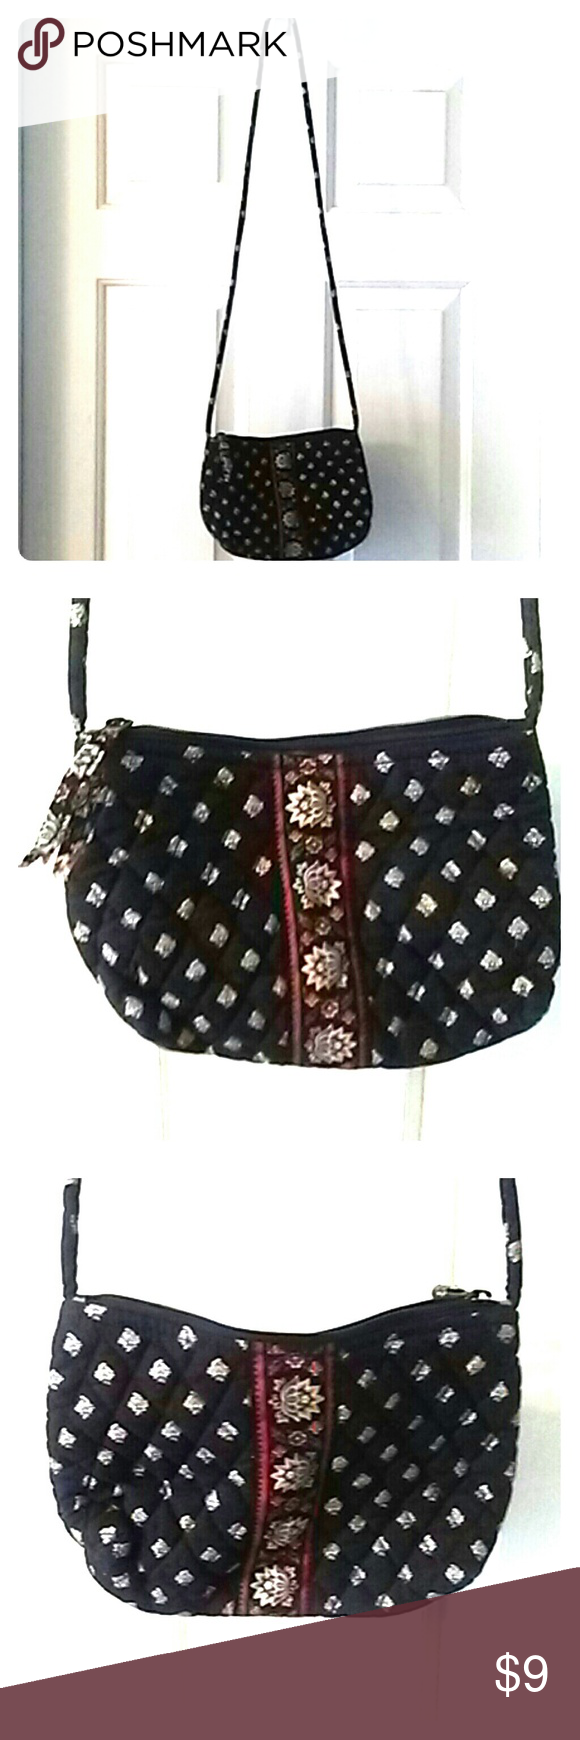 Vera Bradley purse A small Vera Bradley mini shoulder purse. It's black, tan, red and a darker blue or green color. Has small flowers everywhere and in the middle on each side 2 red stripes with 4 larger flowers going down the middle. The inside is dark red. The strap is about 46 inches long. The purse is about 9 inches across and 6 1/2 inches tall. Smoke free home. Vera Bradley Bags Mini Bags